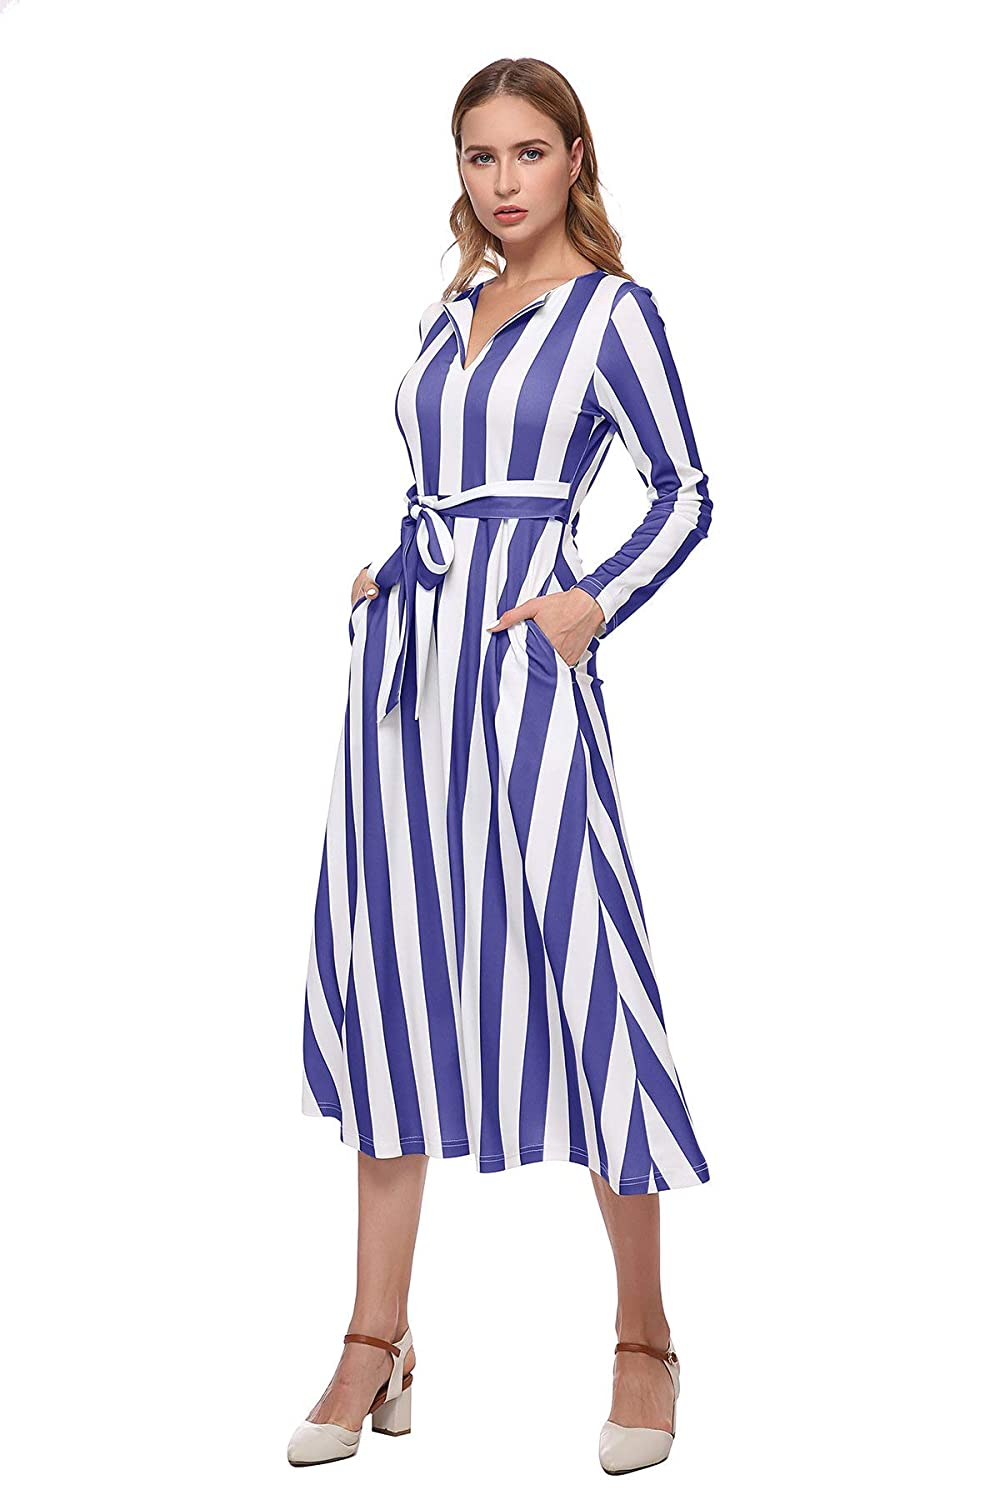 Sailor Dresses, Nautical Theme Dress, WW2 Dresses HUMELYAN Womens Striped/Floral/Leaf/Color Block Long Sleeve Aline Flowy Pockets Maxi Dress (Petite - Plus) $22.99 AT vintagedancer.com